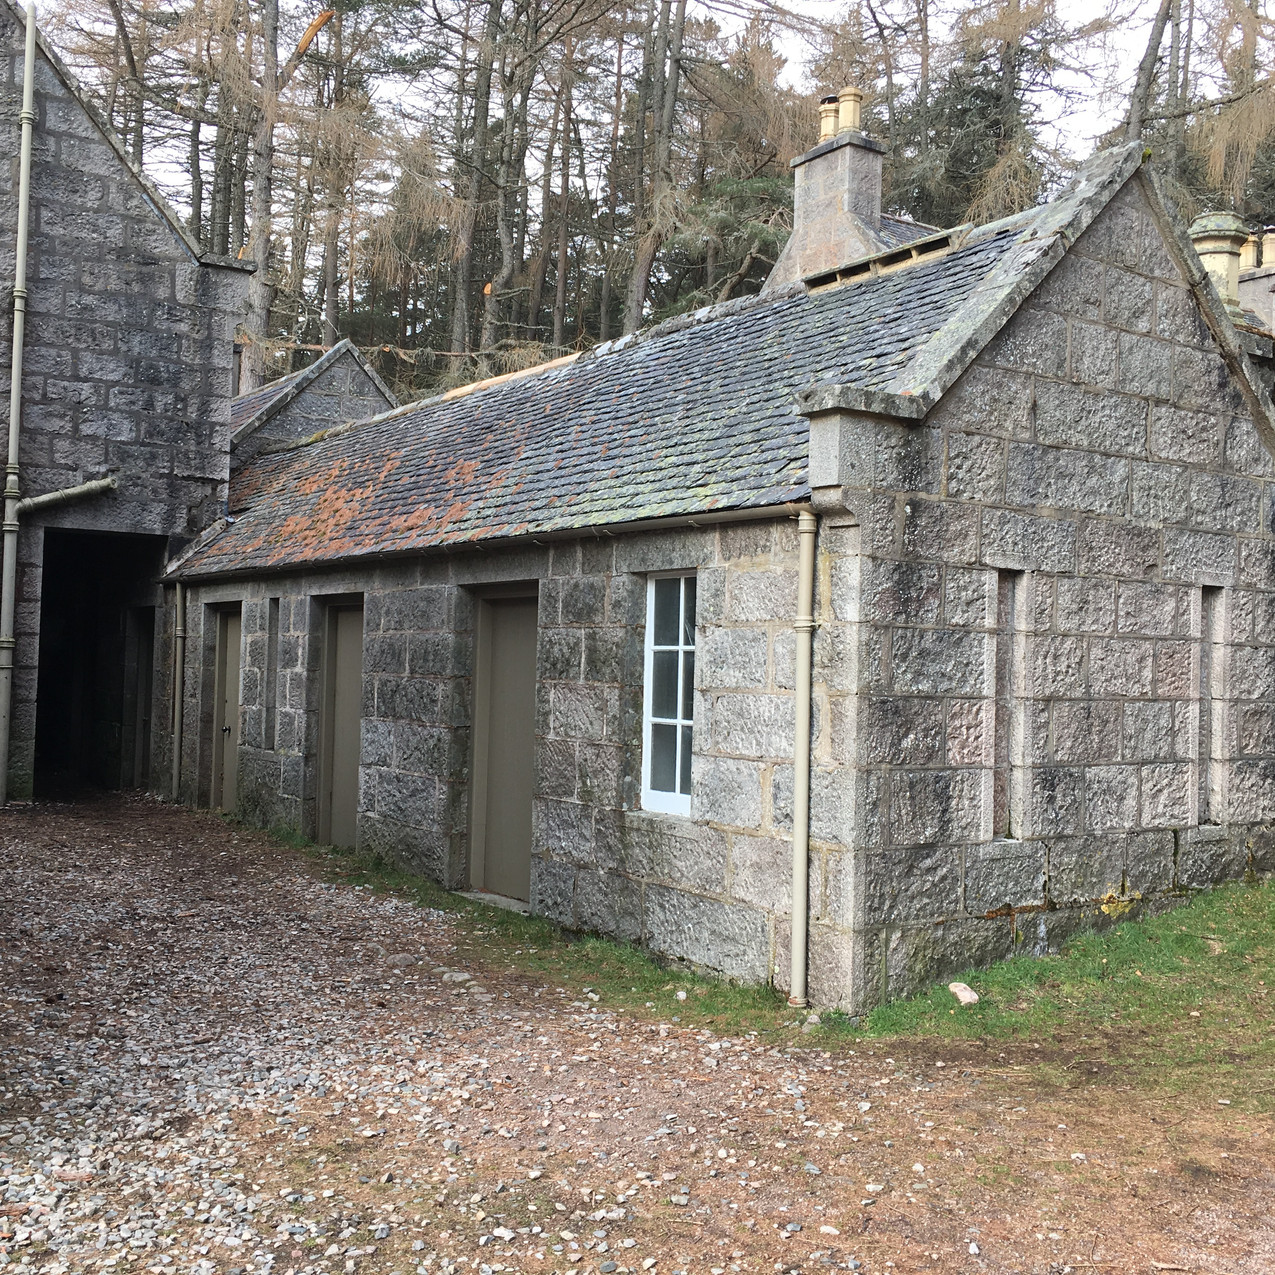 The Bothy Building